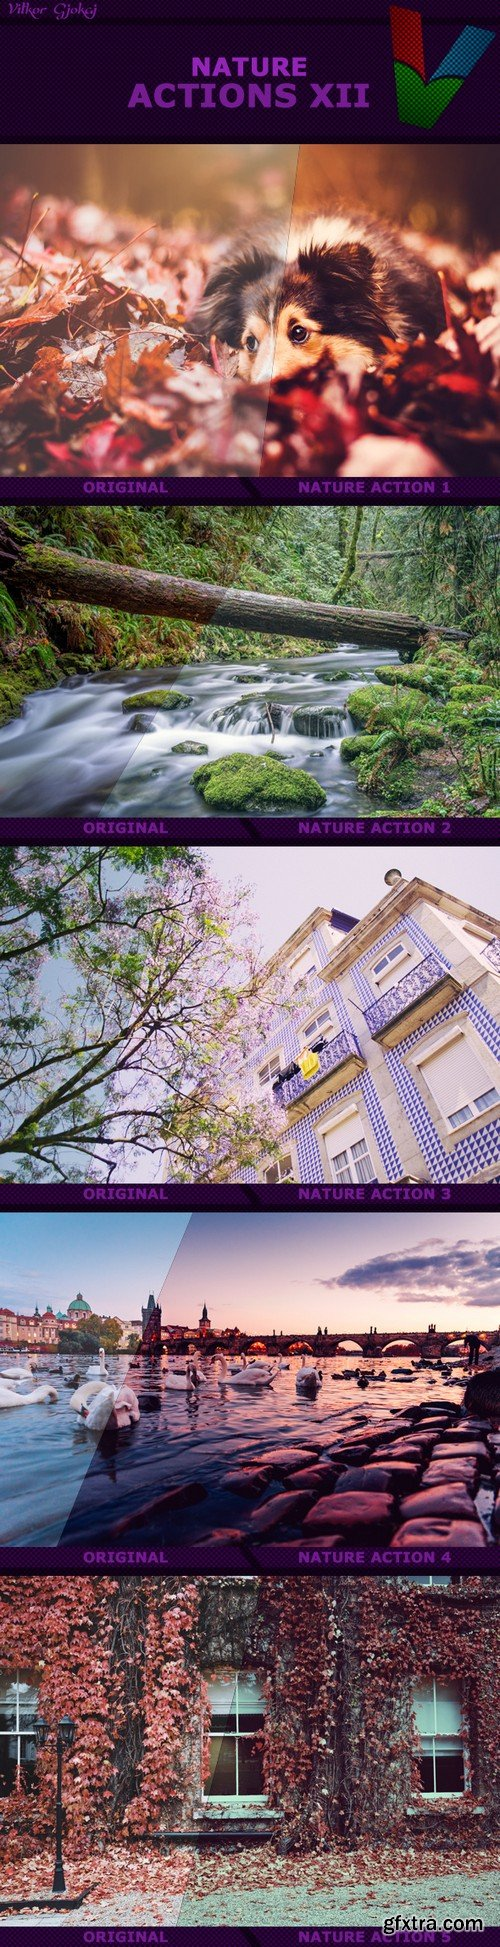 Graphicriver - Nature Actions XII 19162546